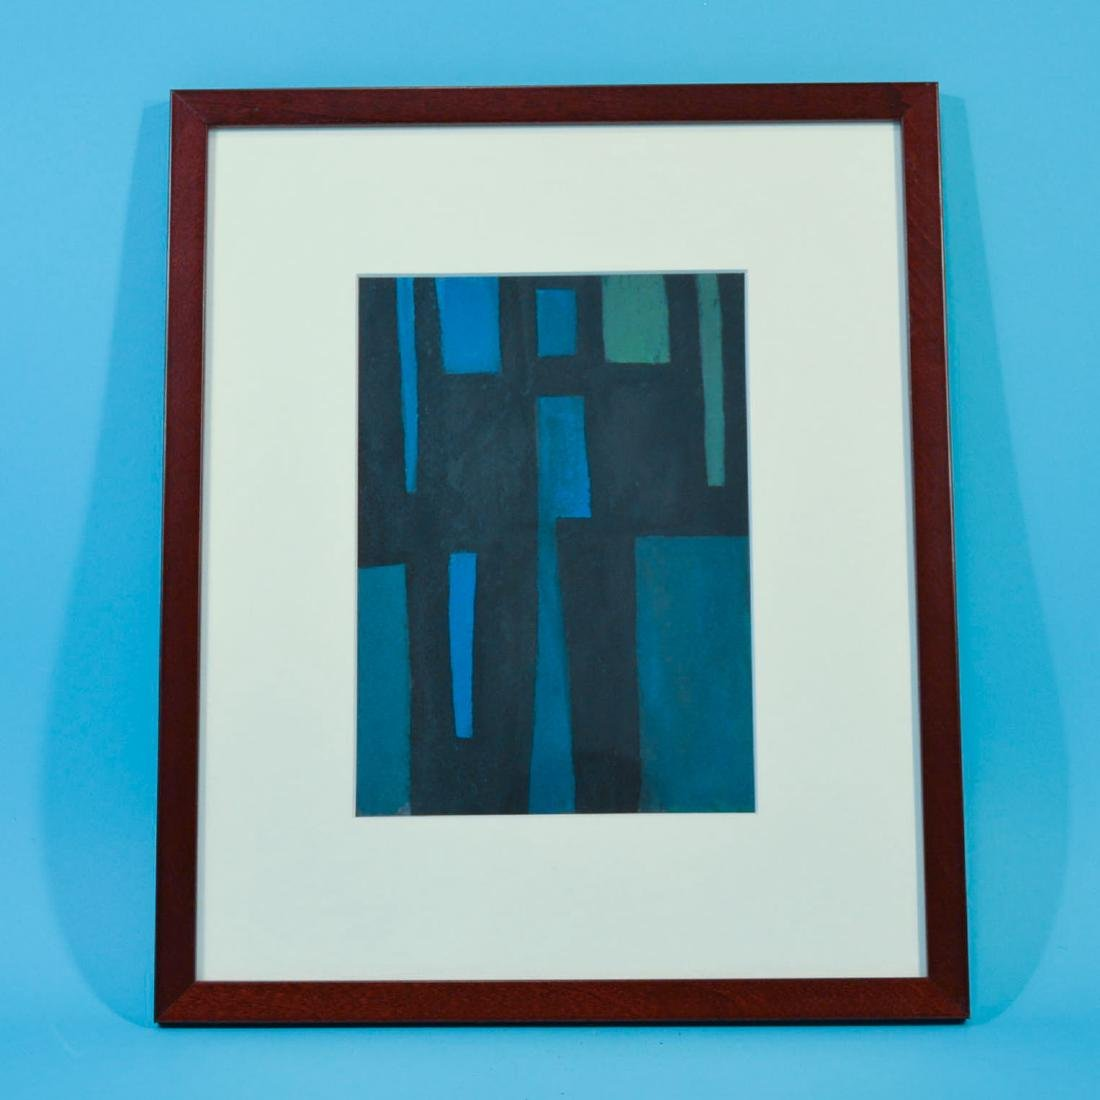 RJ Wolff 1962 Small Abstract Painting on Paper